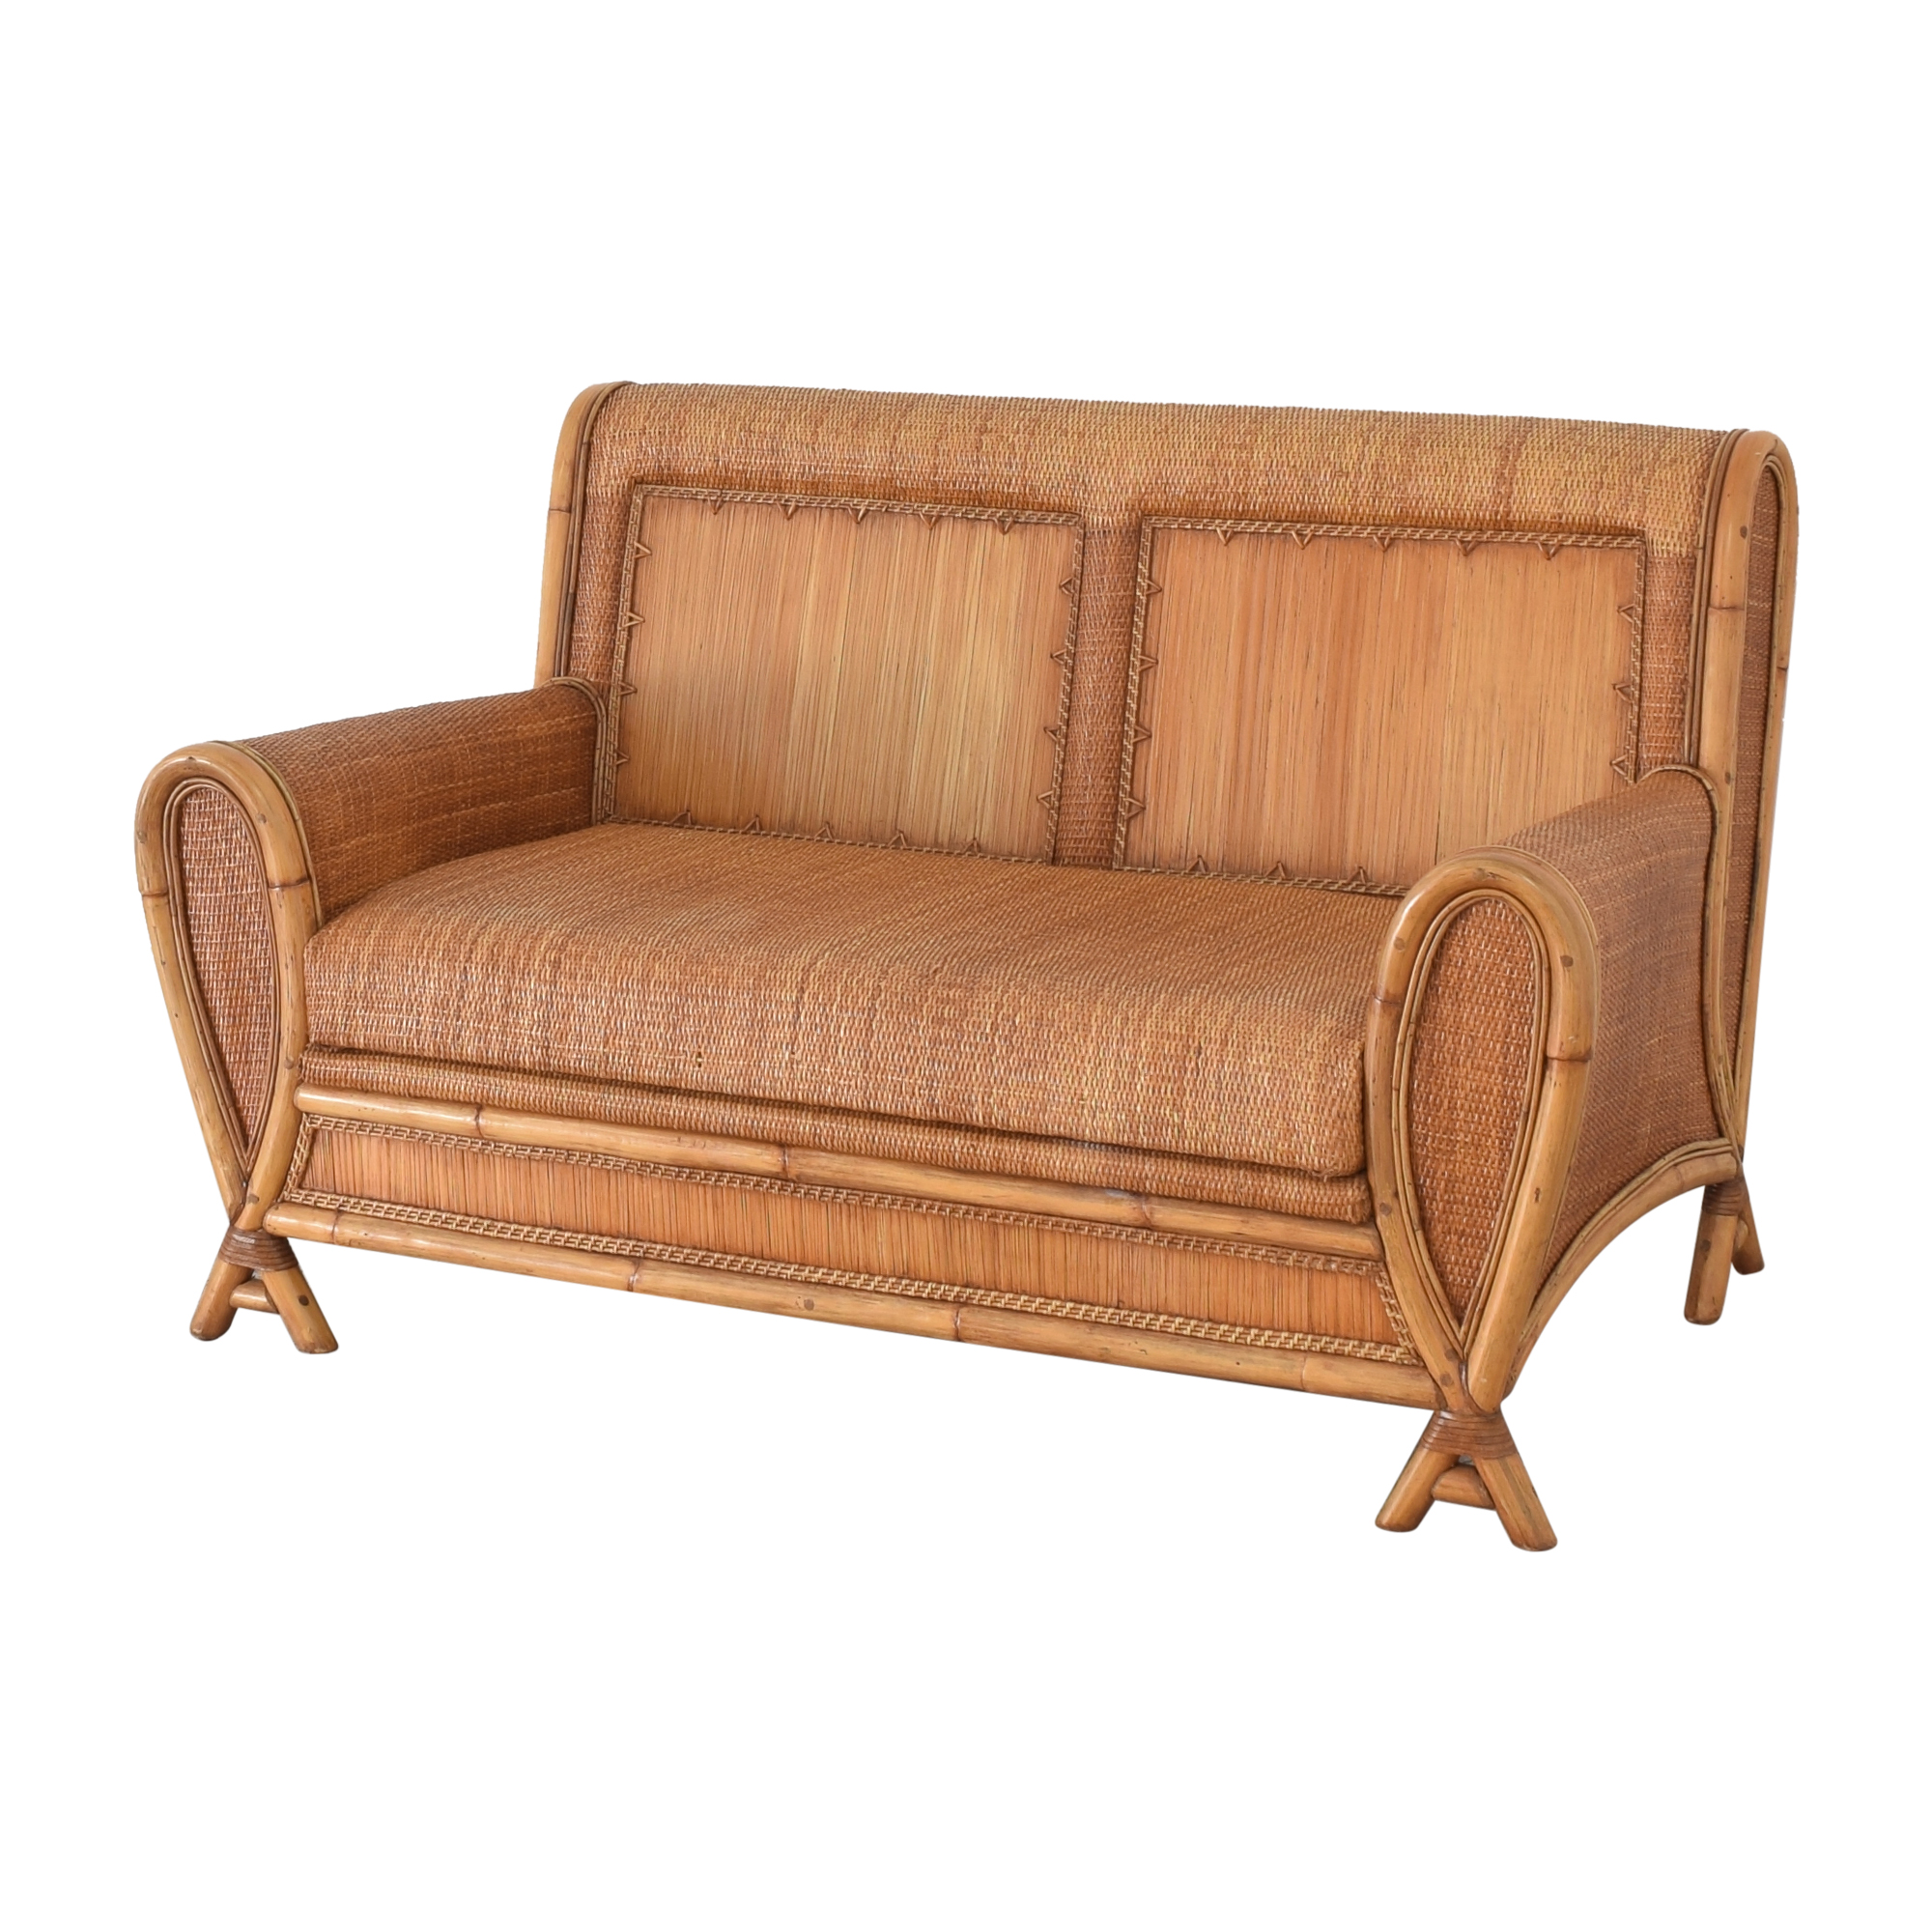 Balinese Bench-Style Loveseat for sale